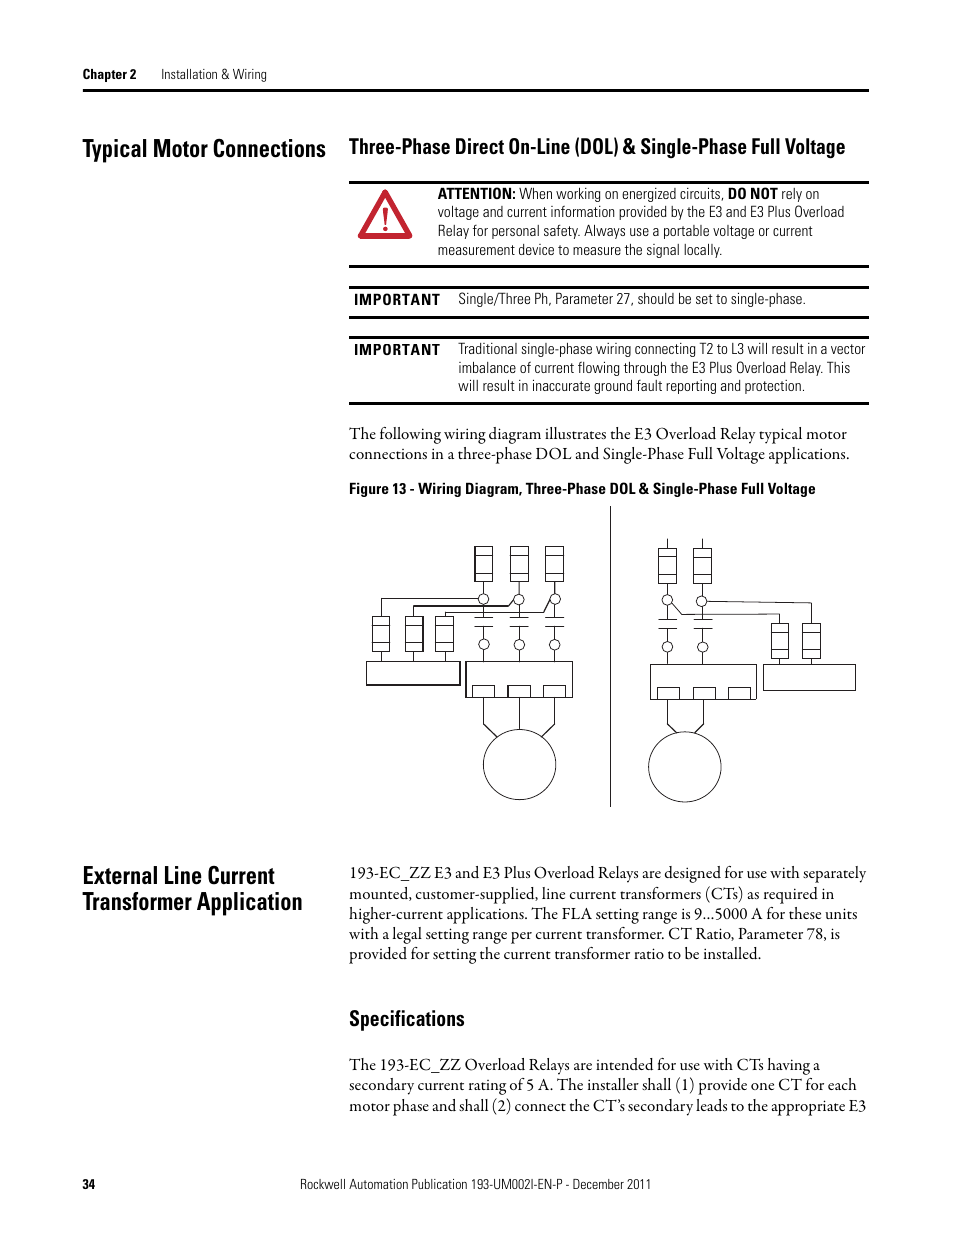 Typical Motor Connections External Line Current Transformer Basic Wiring Diagram Application Specifications Rockwell Automation 193 Ec1 2 3 5 Ecpm592 E3 And